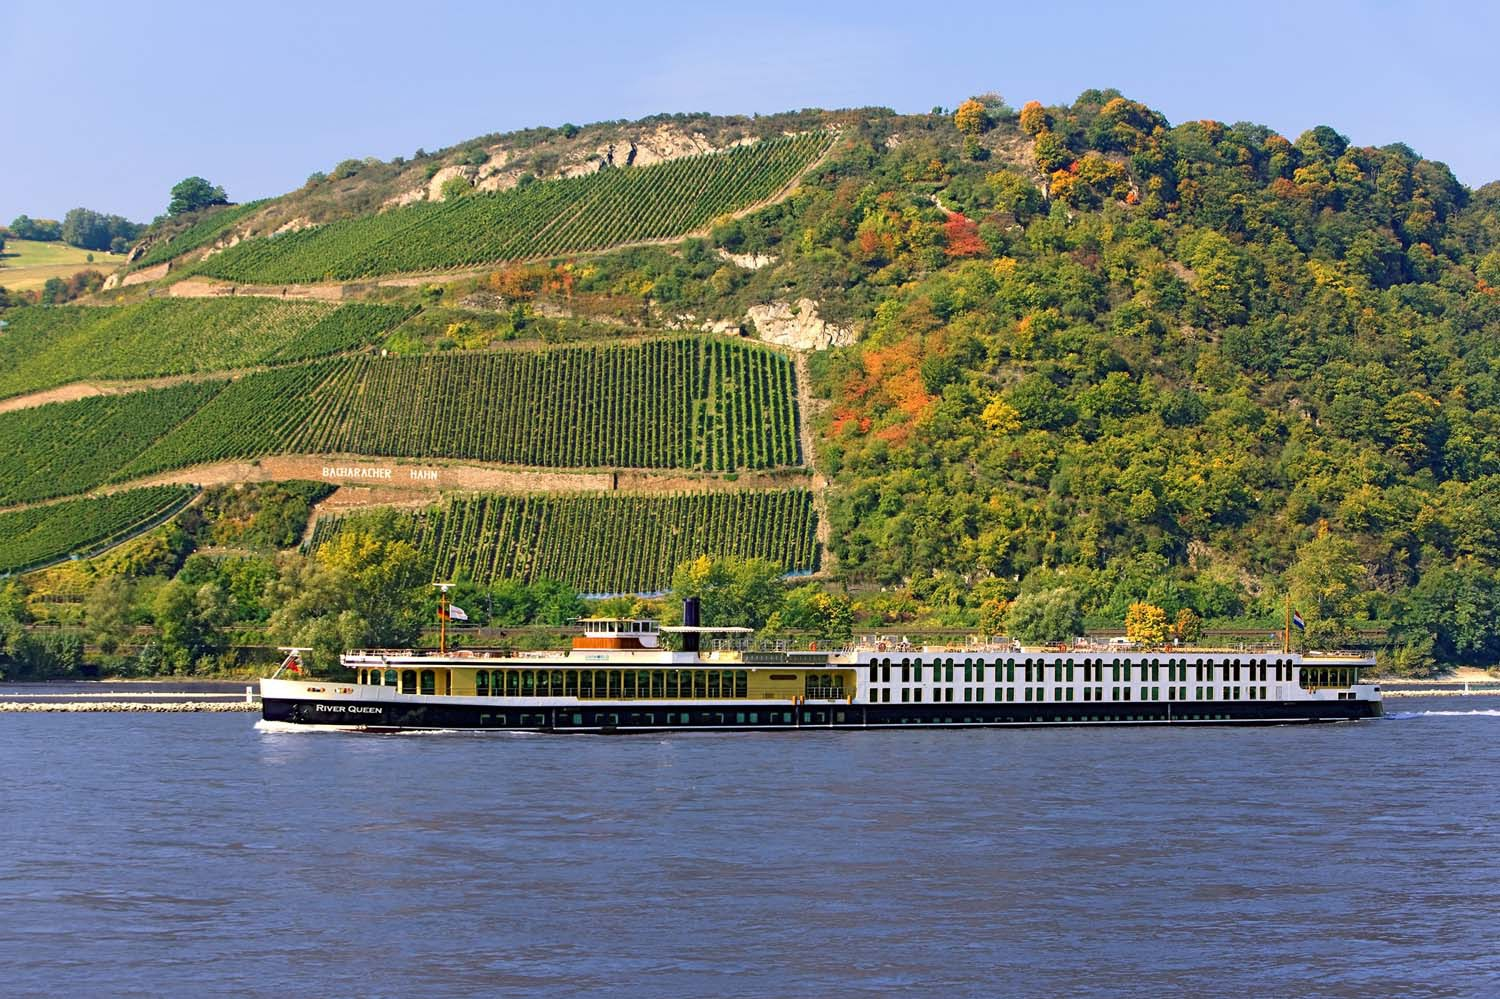 Uniworld River Queen on the Rhine